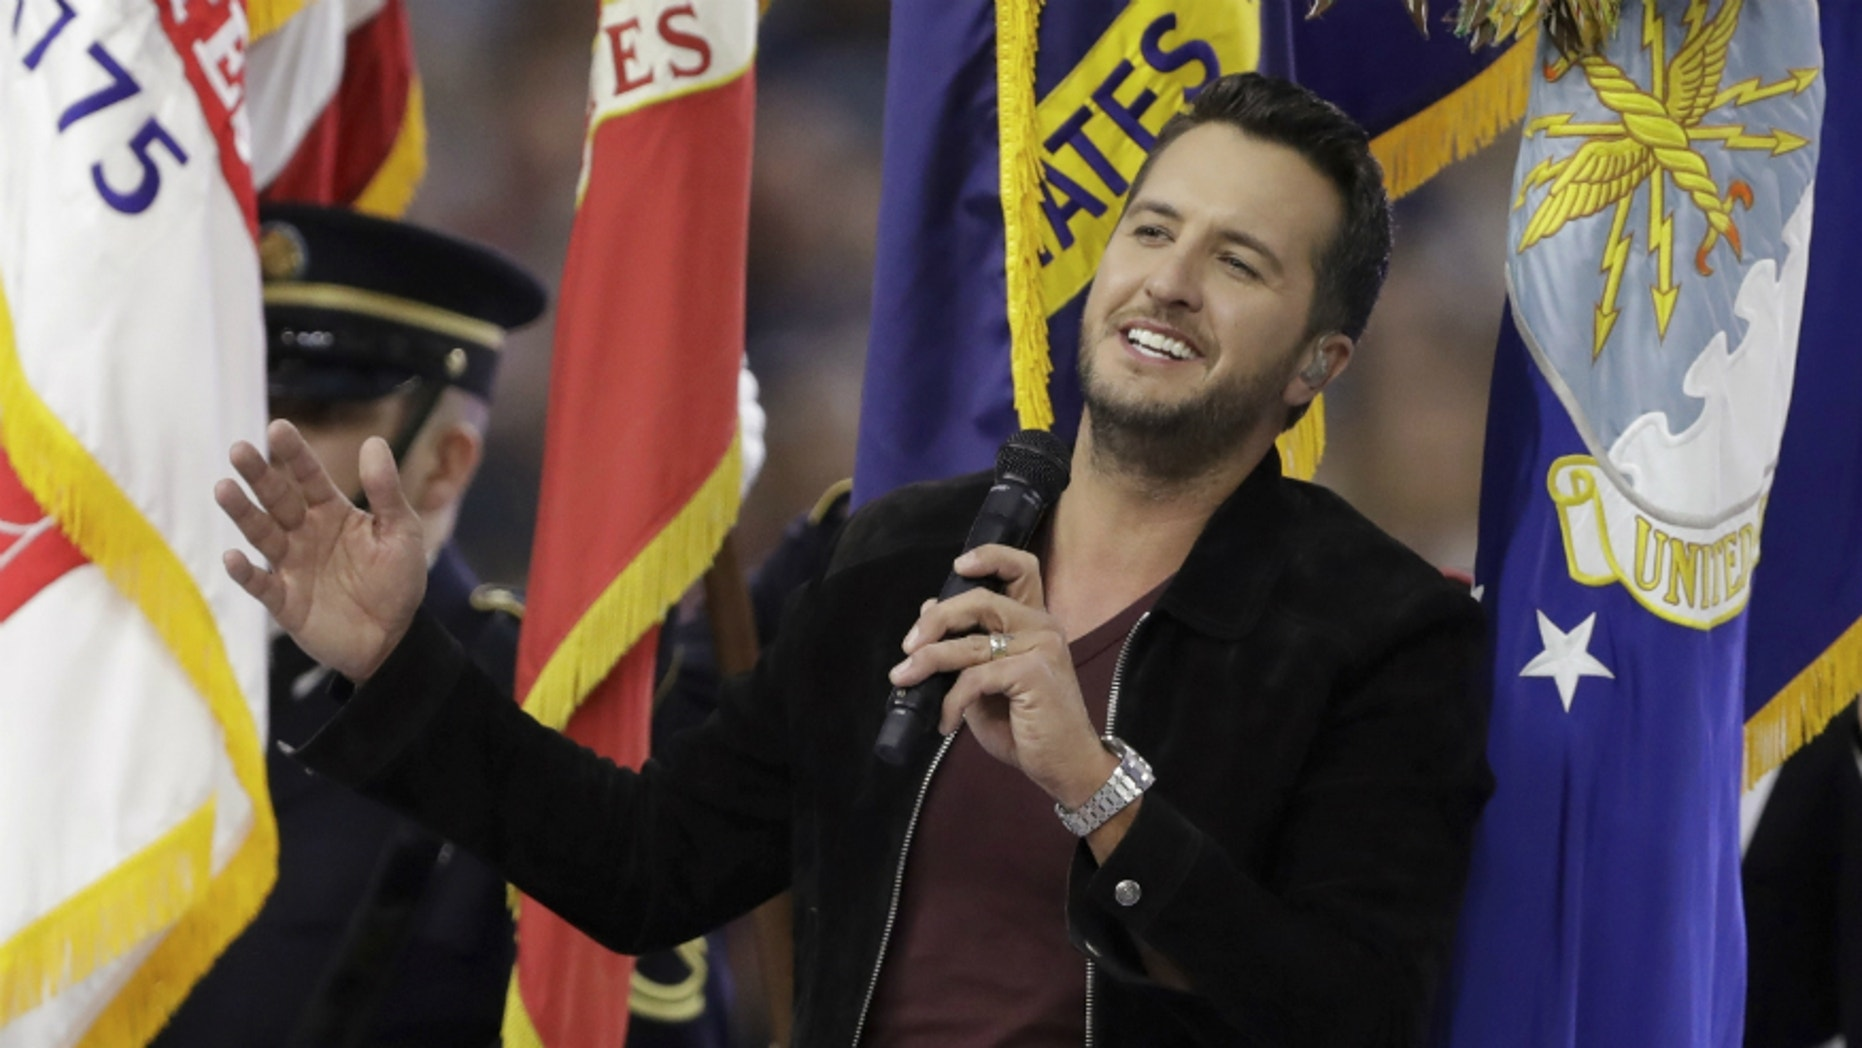 Country music singer Luke Bryan sings the National Anthem, before the NFL Super Bowl 51 football game between the New England Patriots and the Atlanta Falcons, Sunday, Feb. 5, 2017, in Houston.